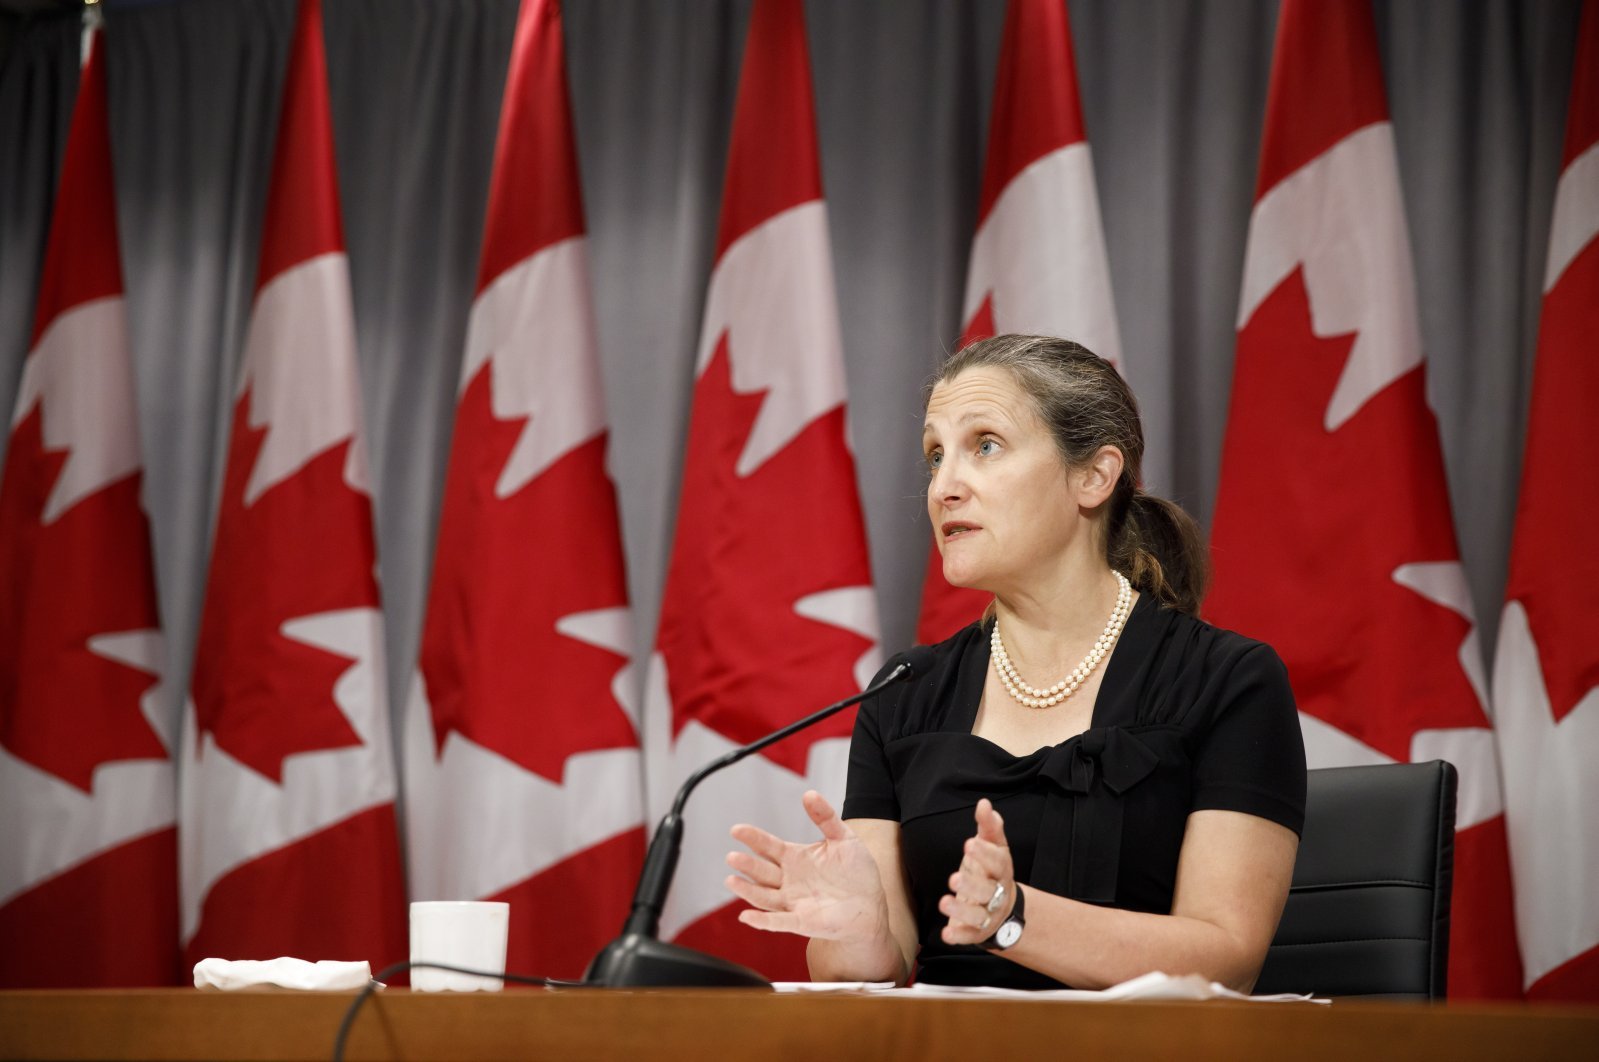 Canada's Deputy Prime Minister Chrystia Freeland speaks during a news conference in Toronto, Aug. 7, 2020. (The Canadian Press via AP)